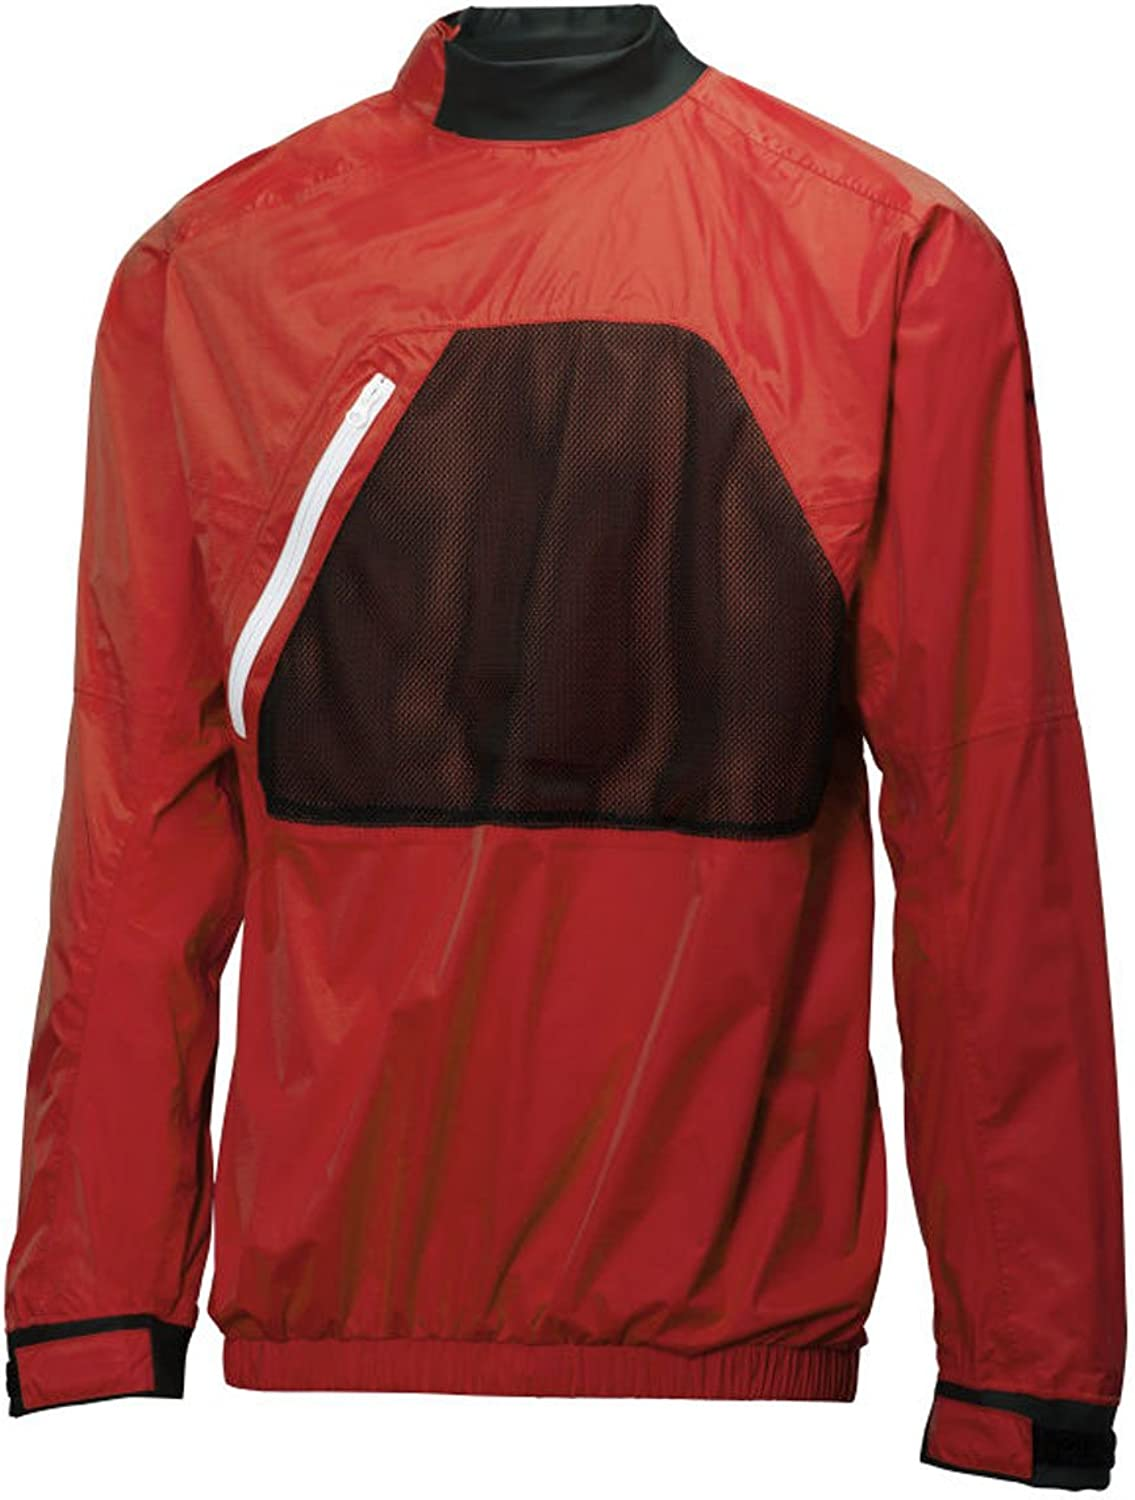 Helly Hansen Dinghy Smock Top Small Alert Red